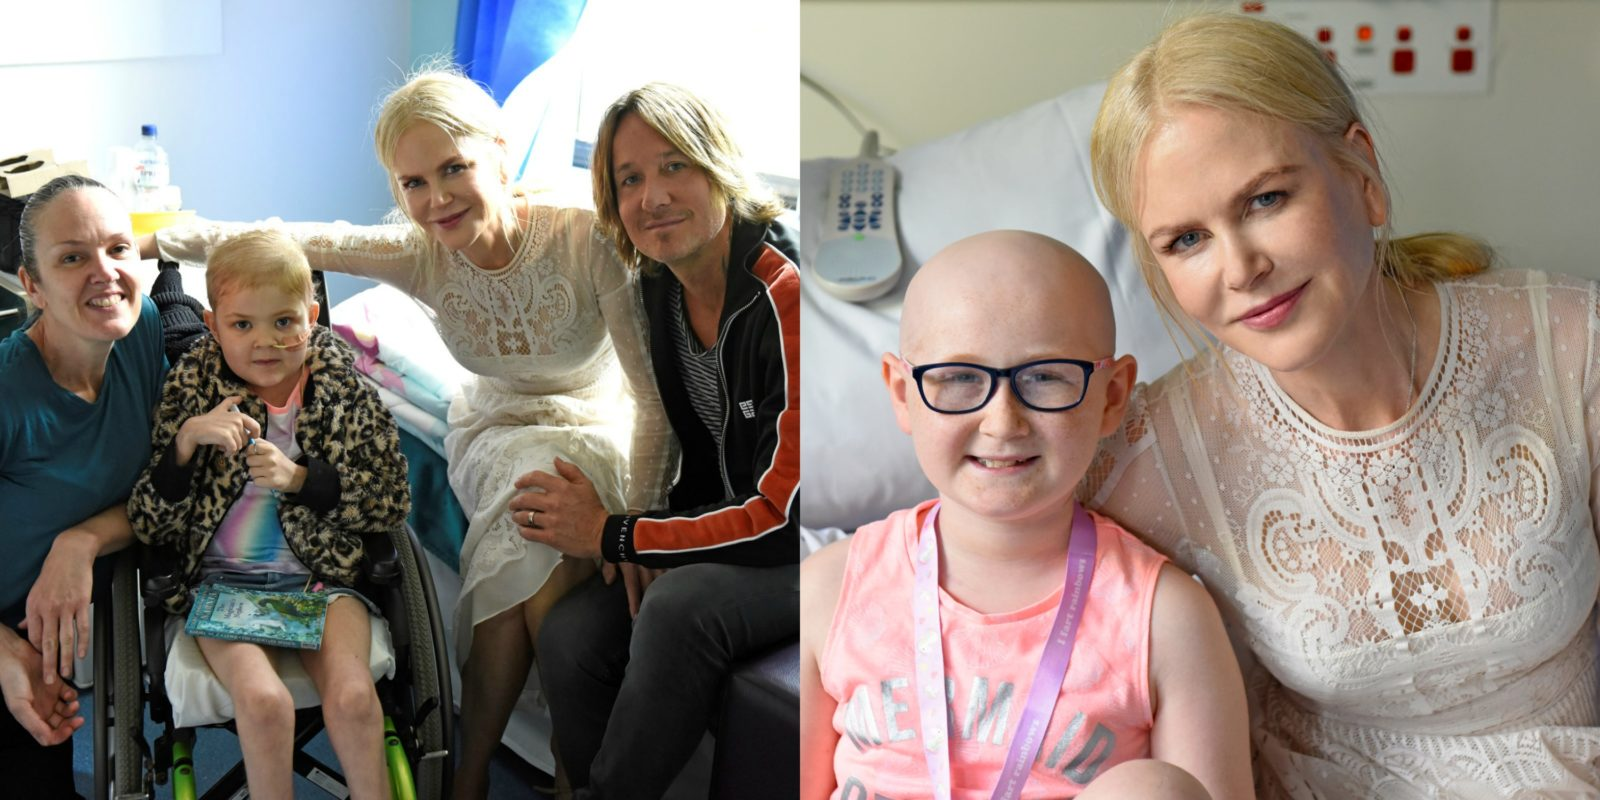 Nicole Kidman and Keith Urban posed for photos with patient Lona and her mum, as well as patient Kayla.